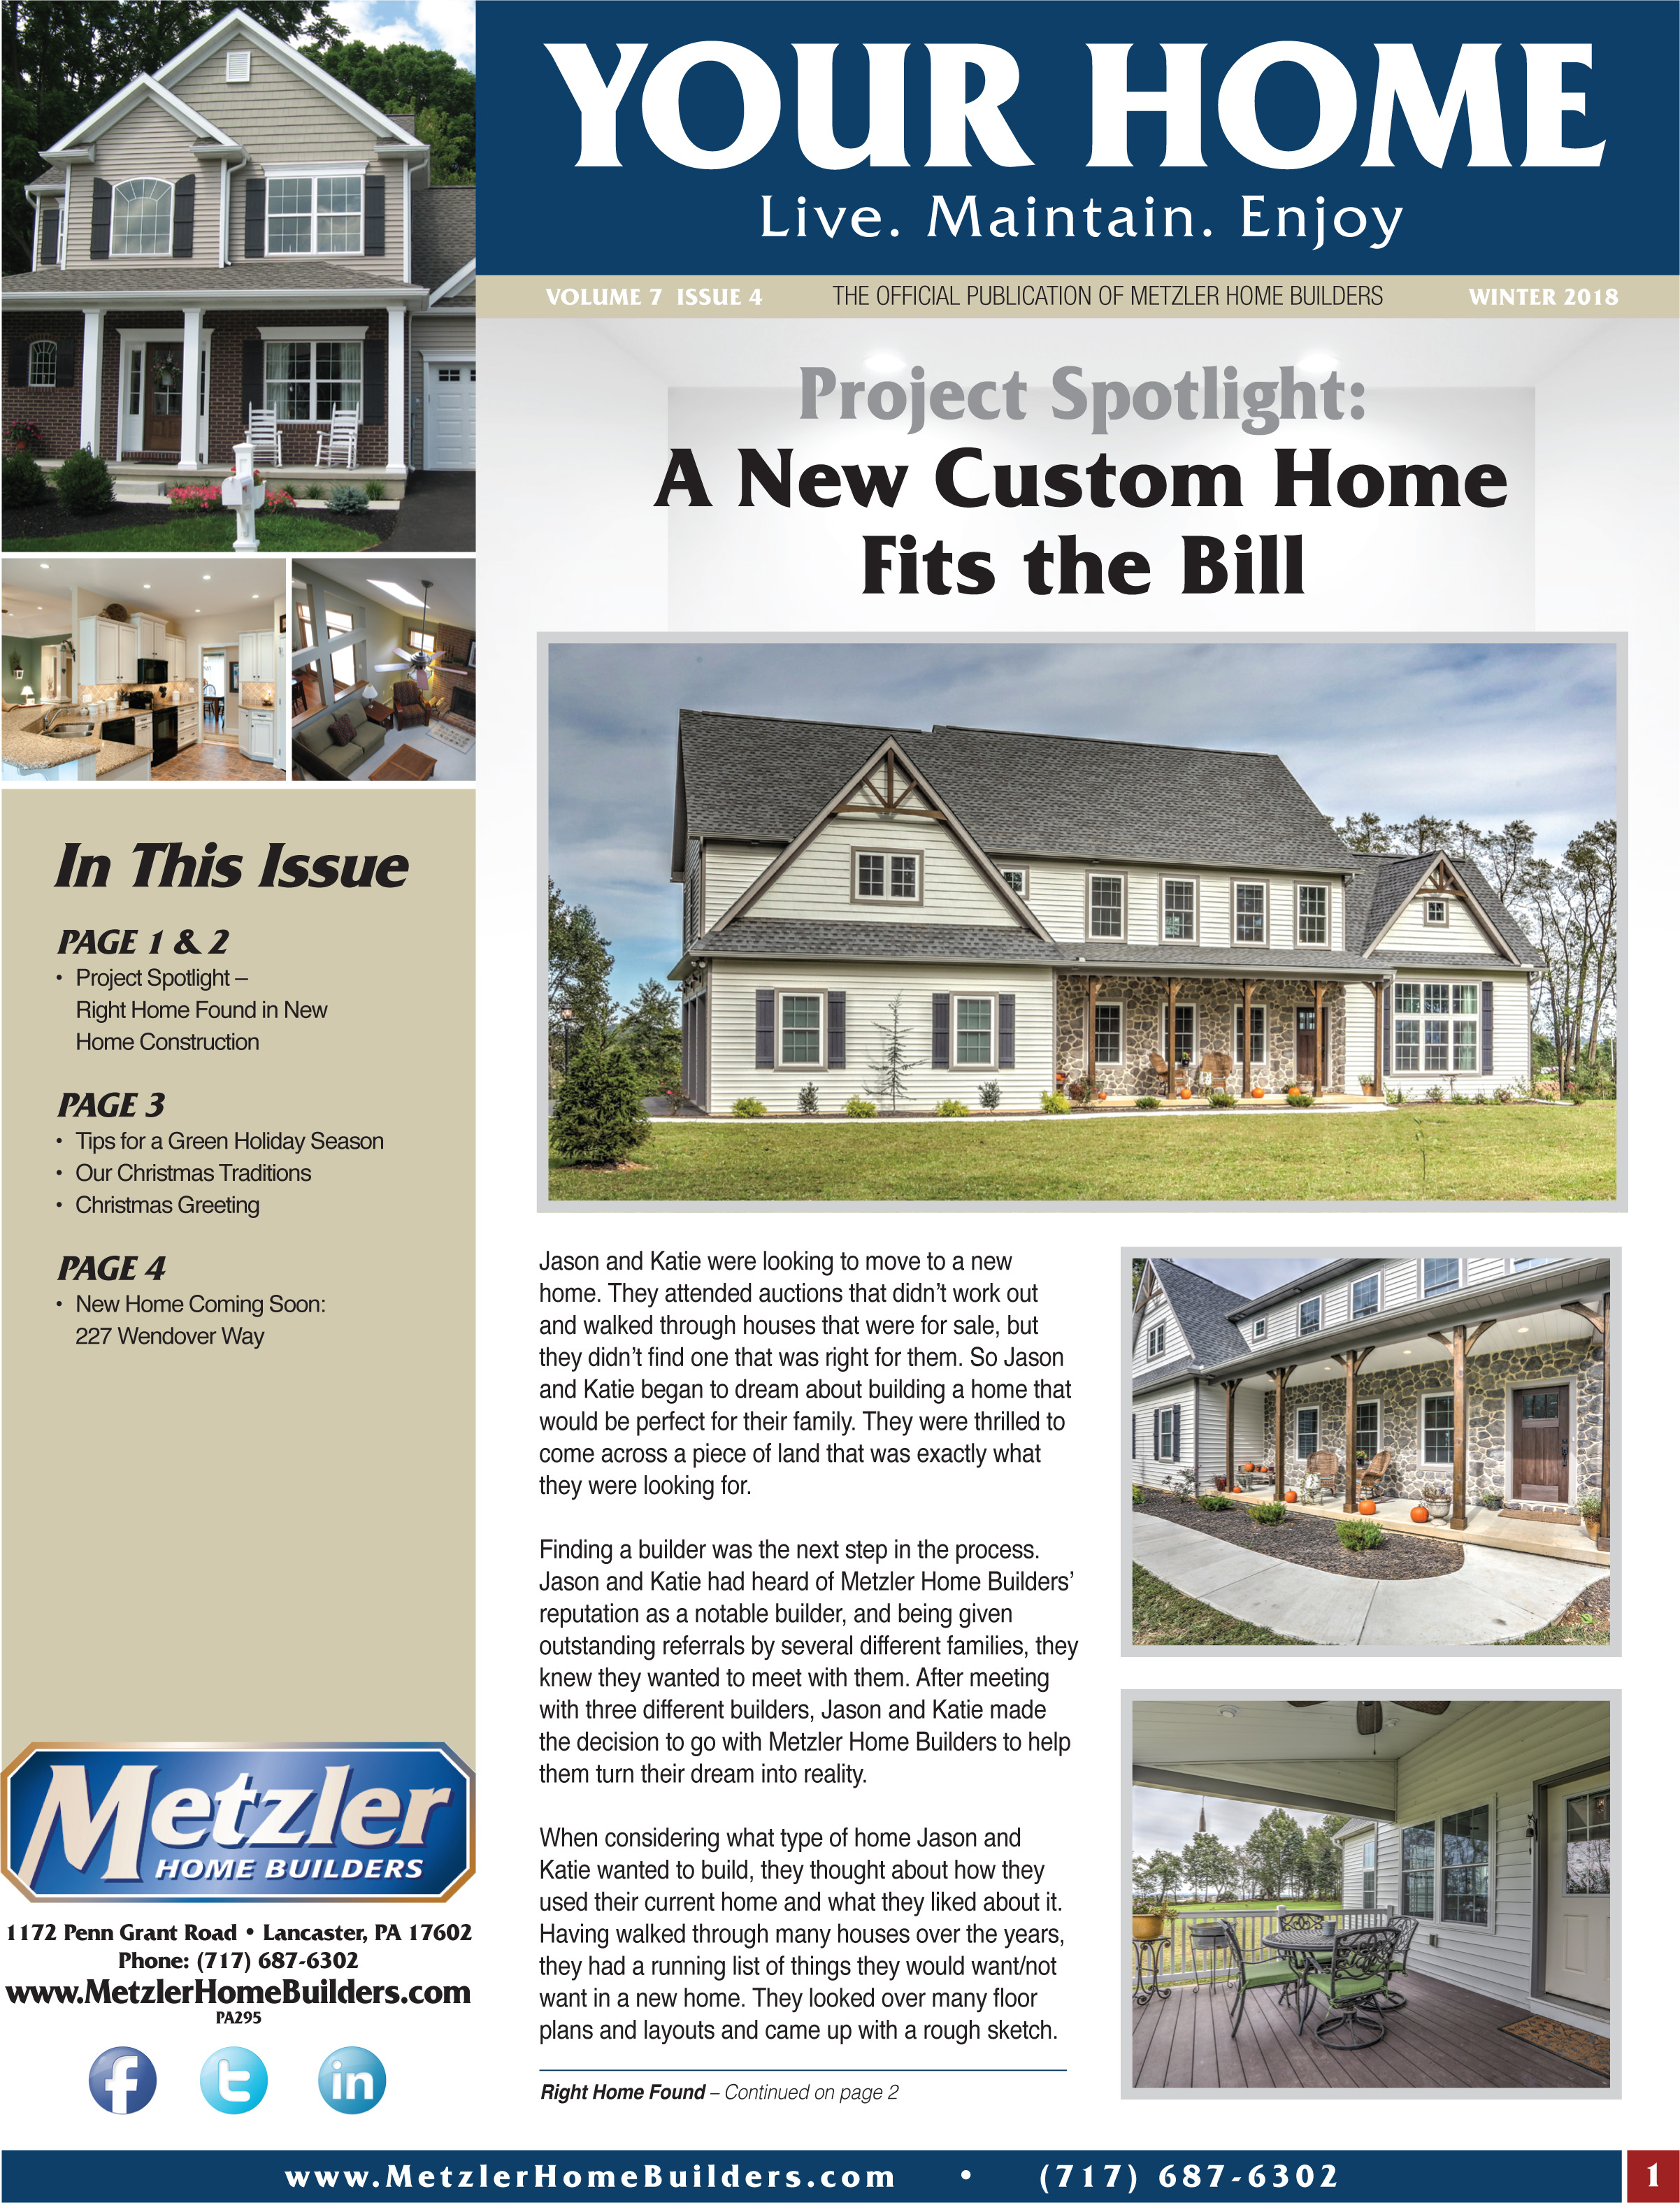 Metzler 'Your Home' Newsletter PDF cover for Volume 7 Issue 4